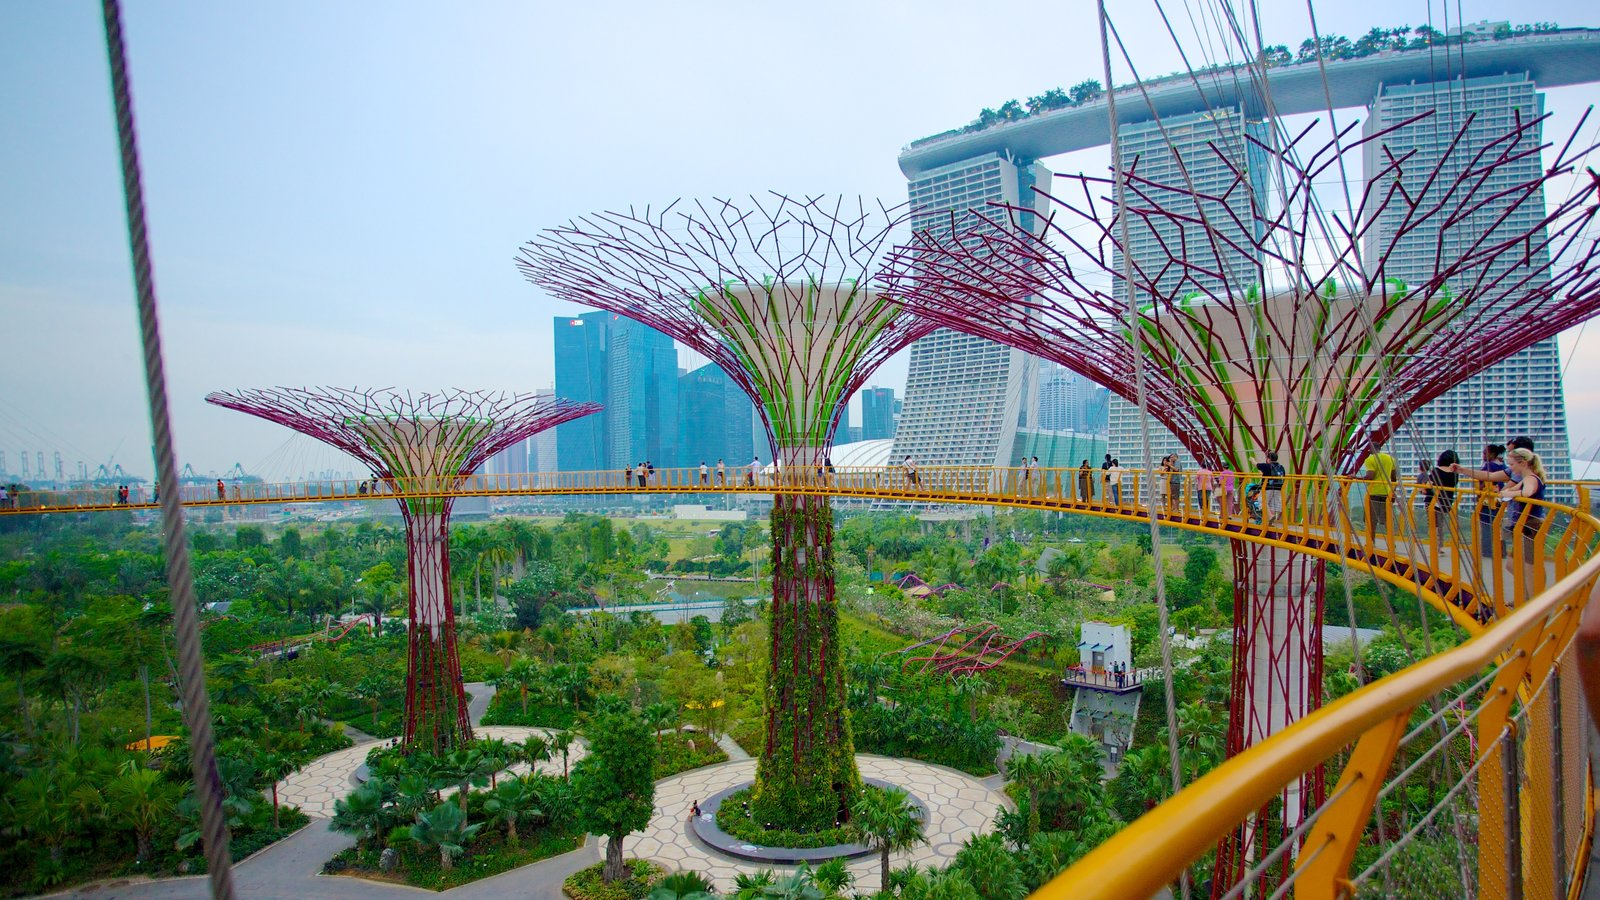 Garden By The Bay Admission gardens_by_the_bay_singapore_aerial_view gardensthe bay 01